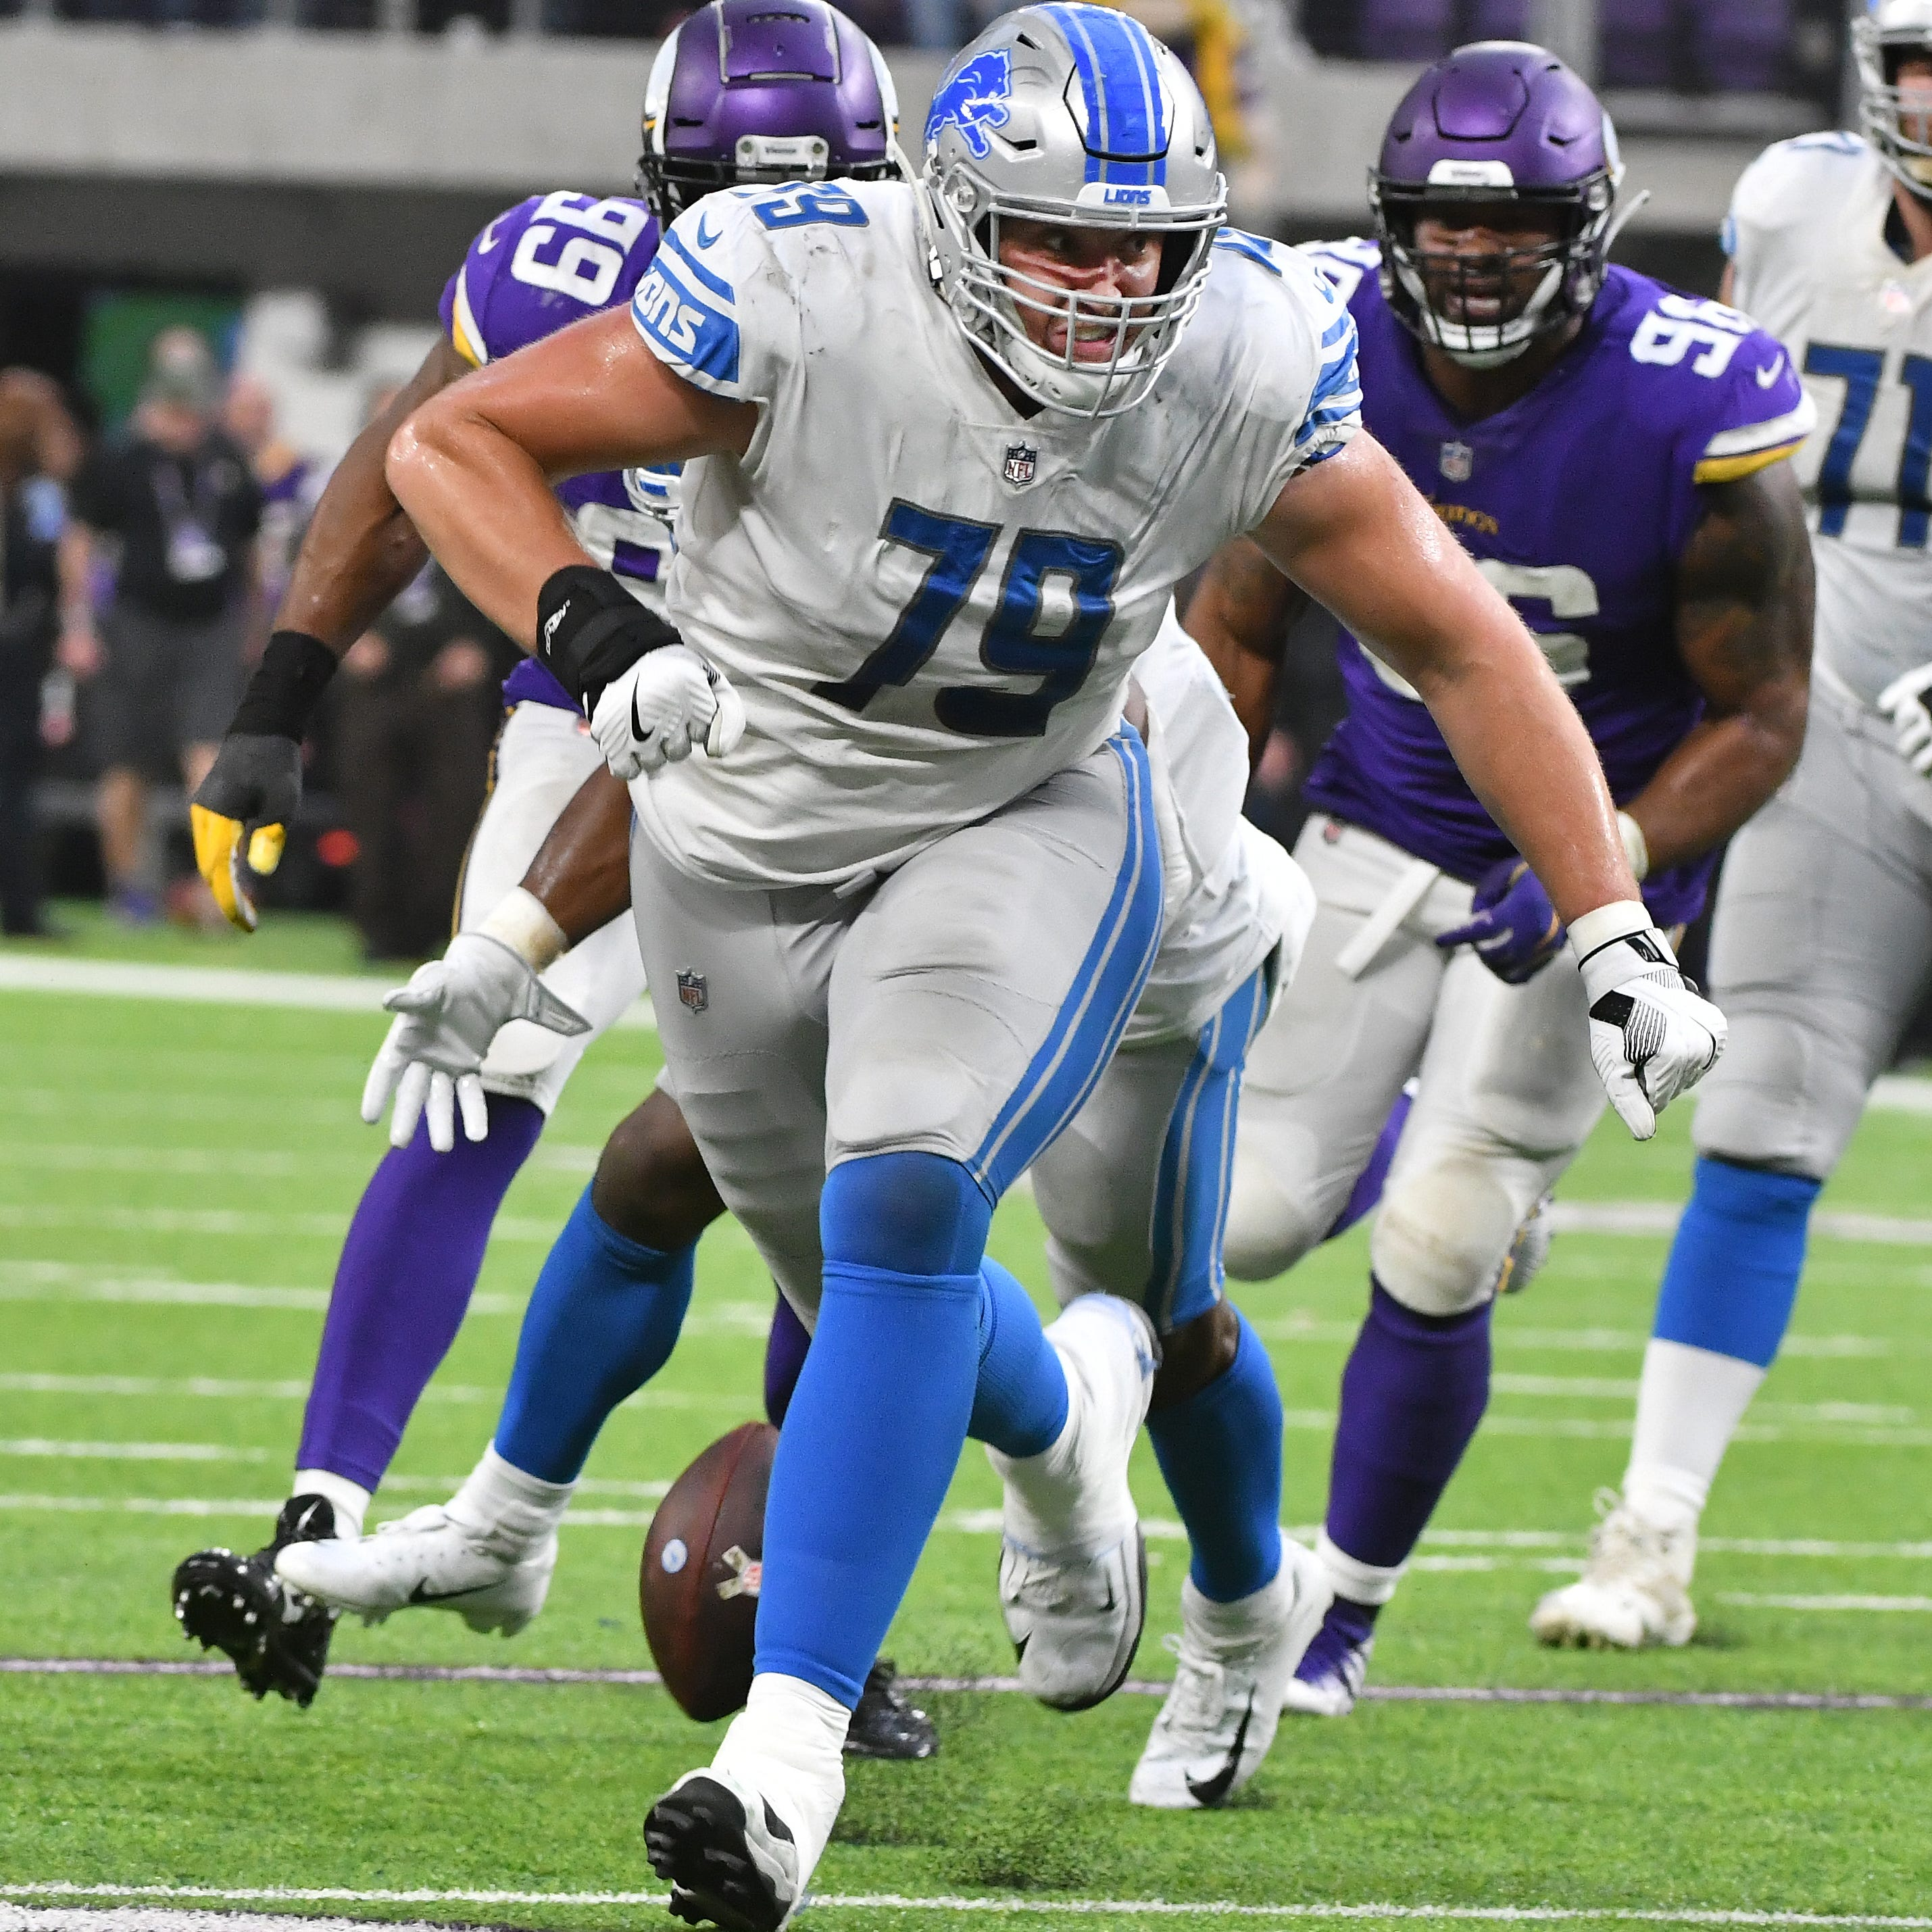 Lions mailbag: OL outlook, Stafford's future, Oliver's impact and more